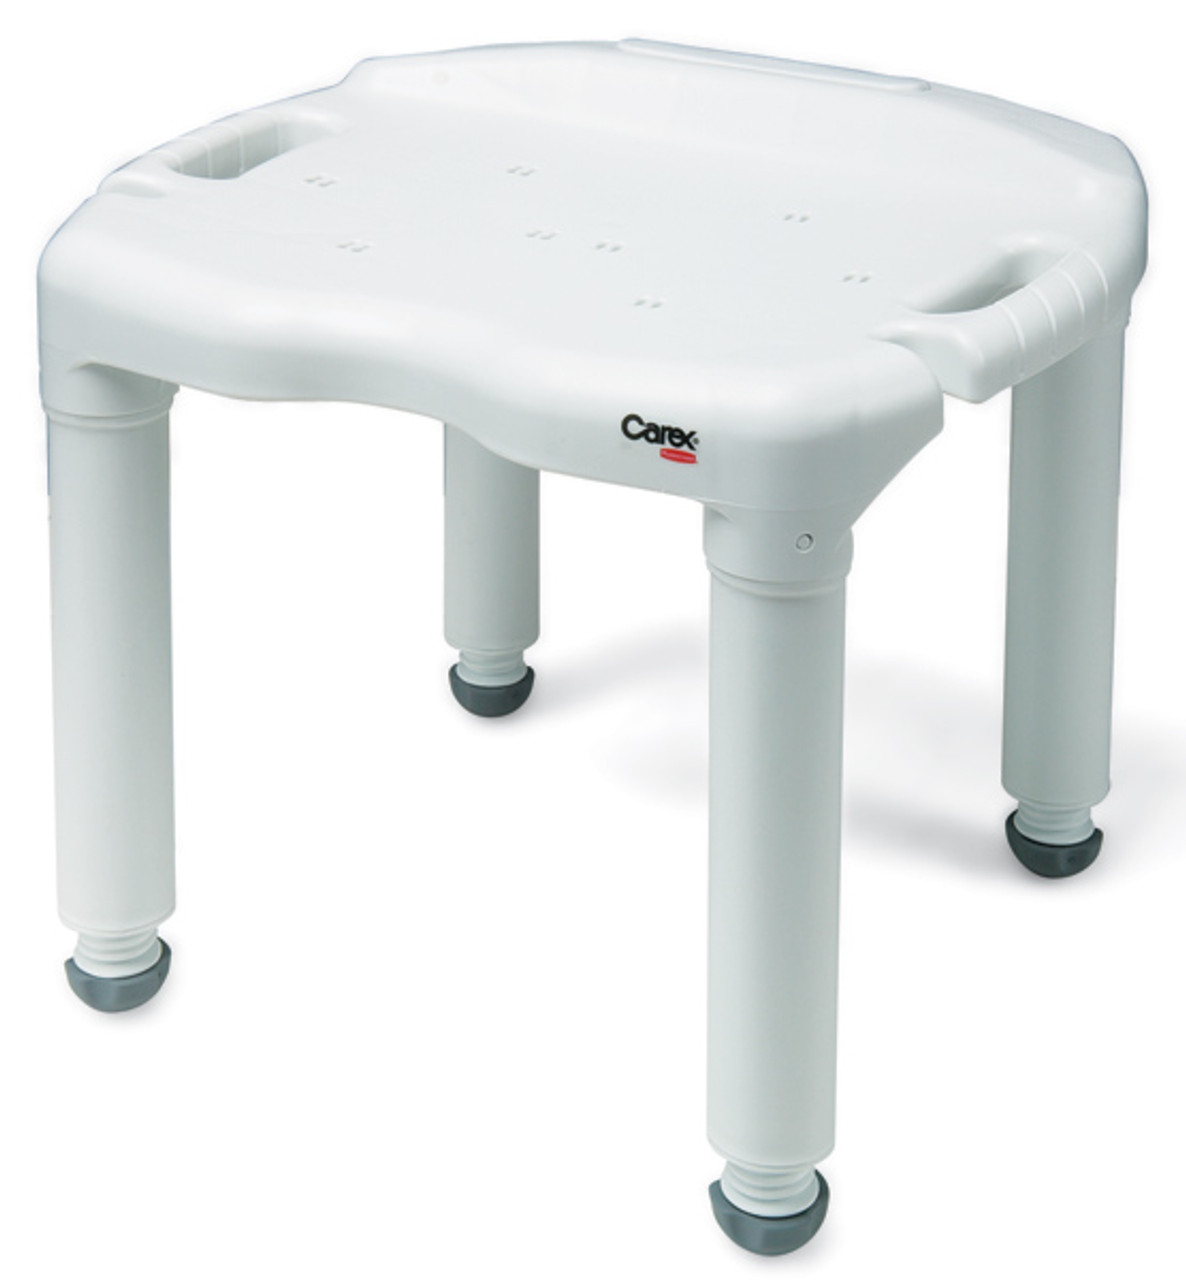 Nc28972 North Coast Medical Carex Bath Seat